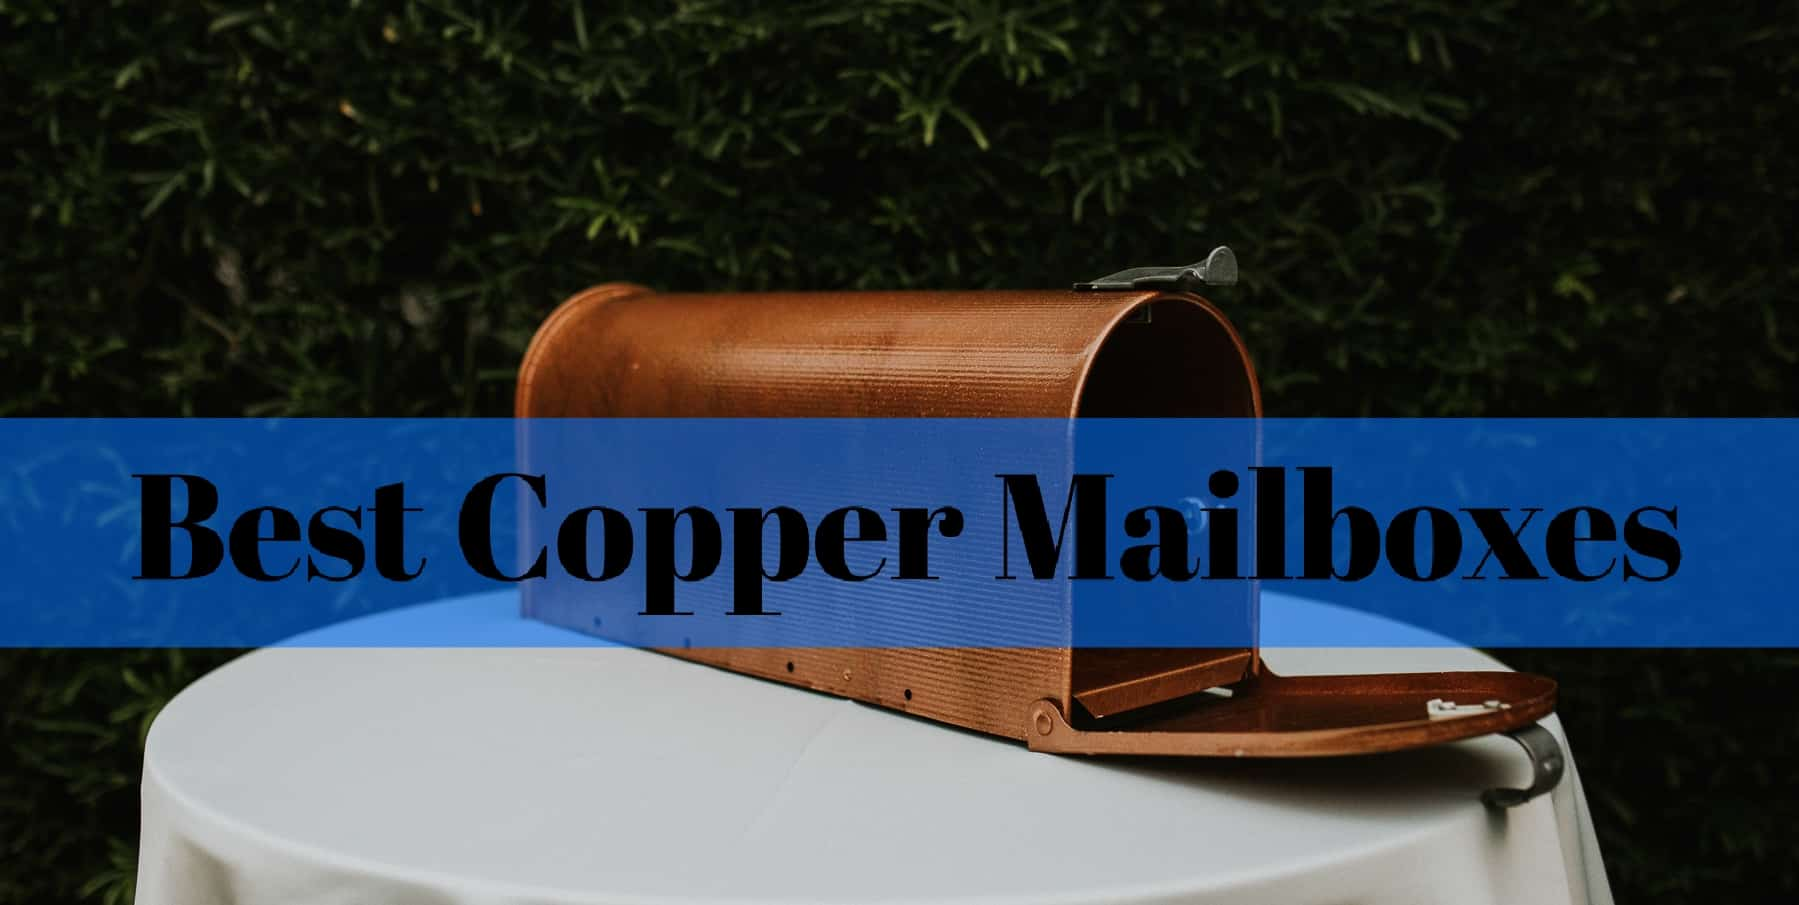 best copper mailboxes